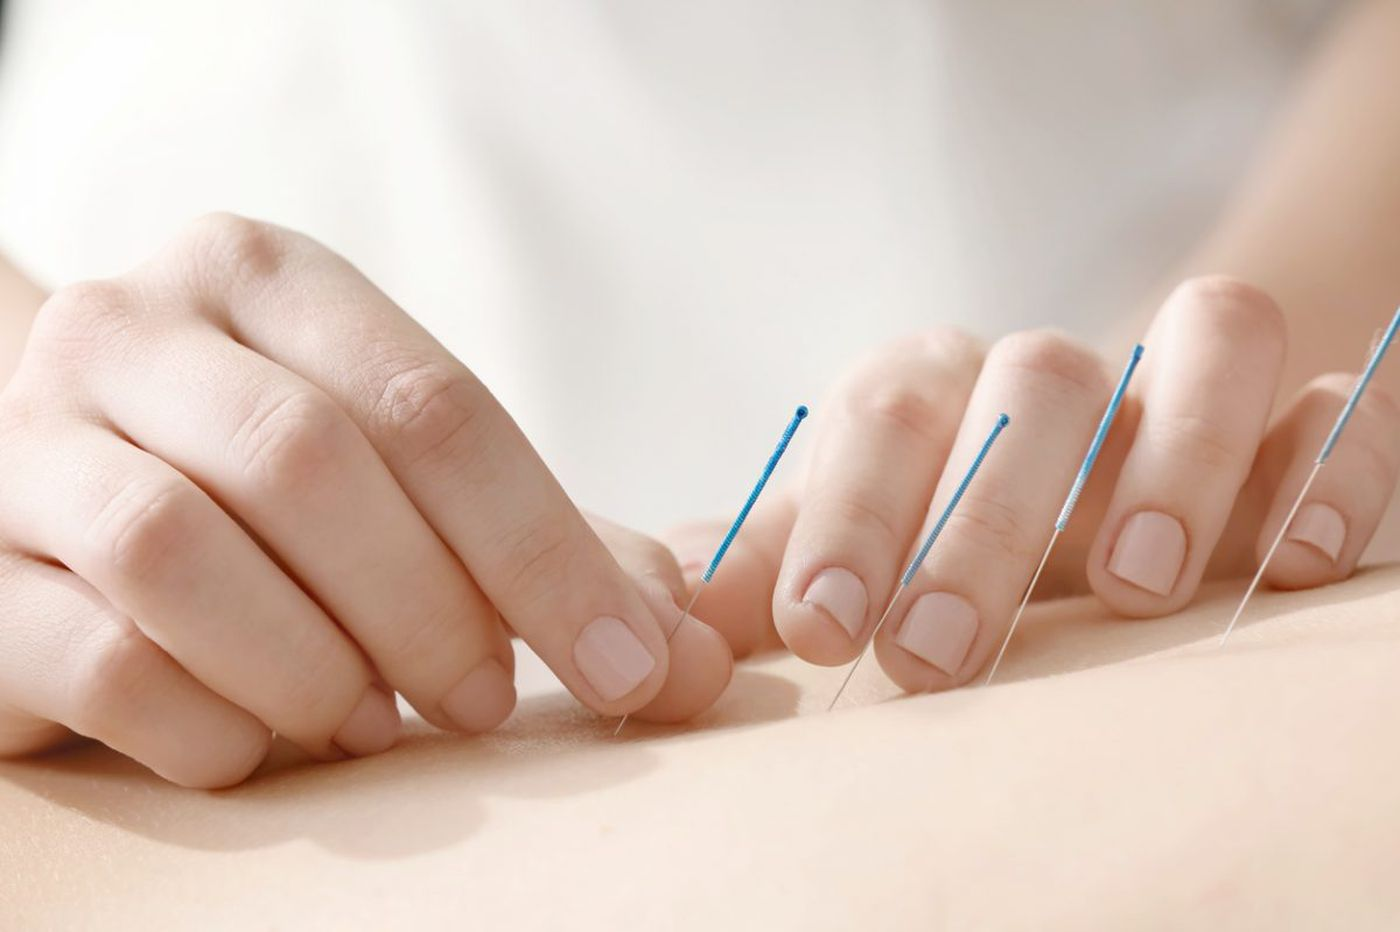 Interested in acupuncture? Tips, recommendations to find the best Philly area practitioners